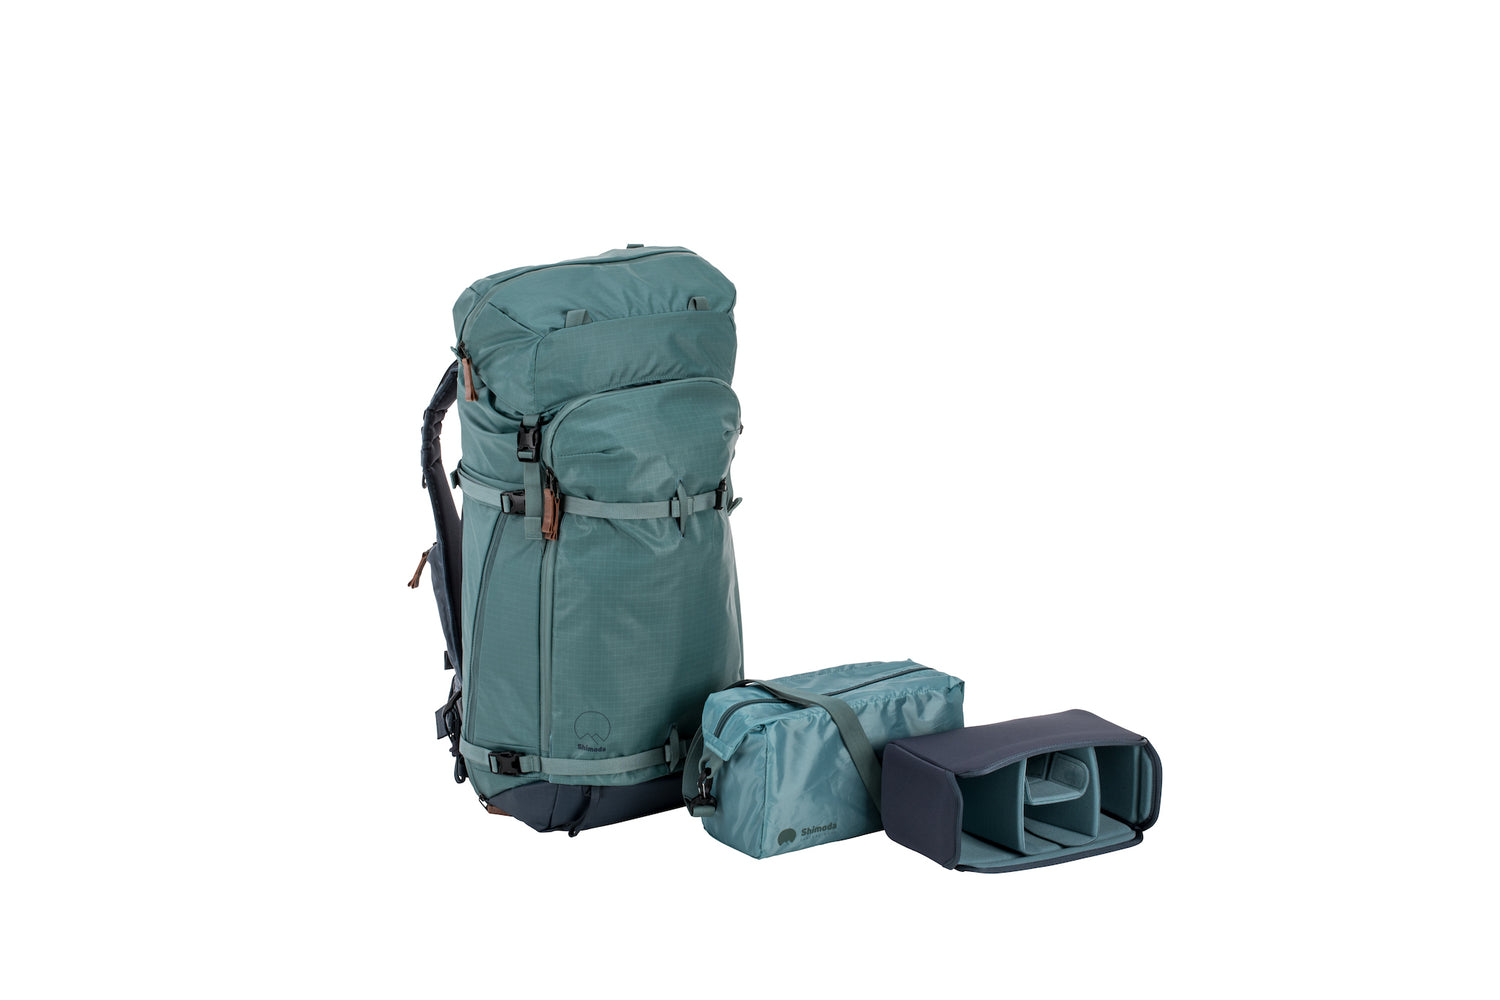 Shimoda Designs Explore 60 Backpack Starter Kit - Sea Pine